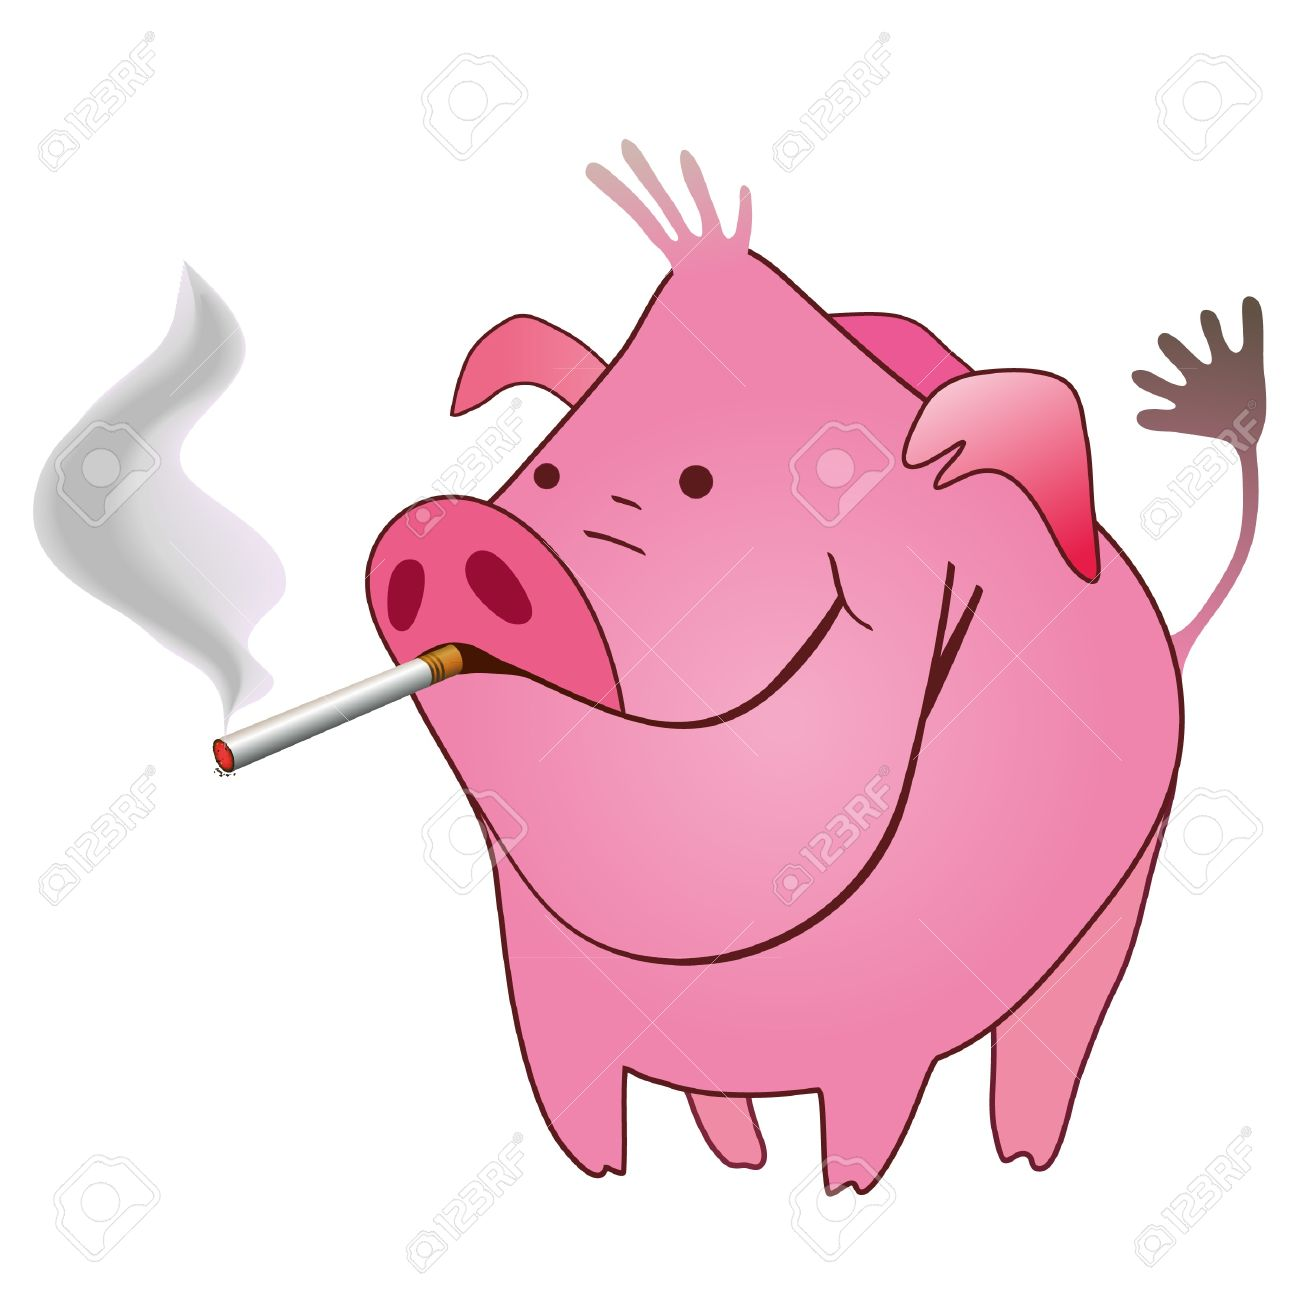 Fun clipart pig Pig Smoking Pictures Very Funny